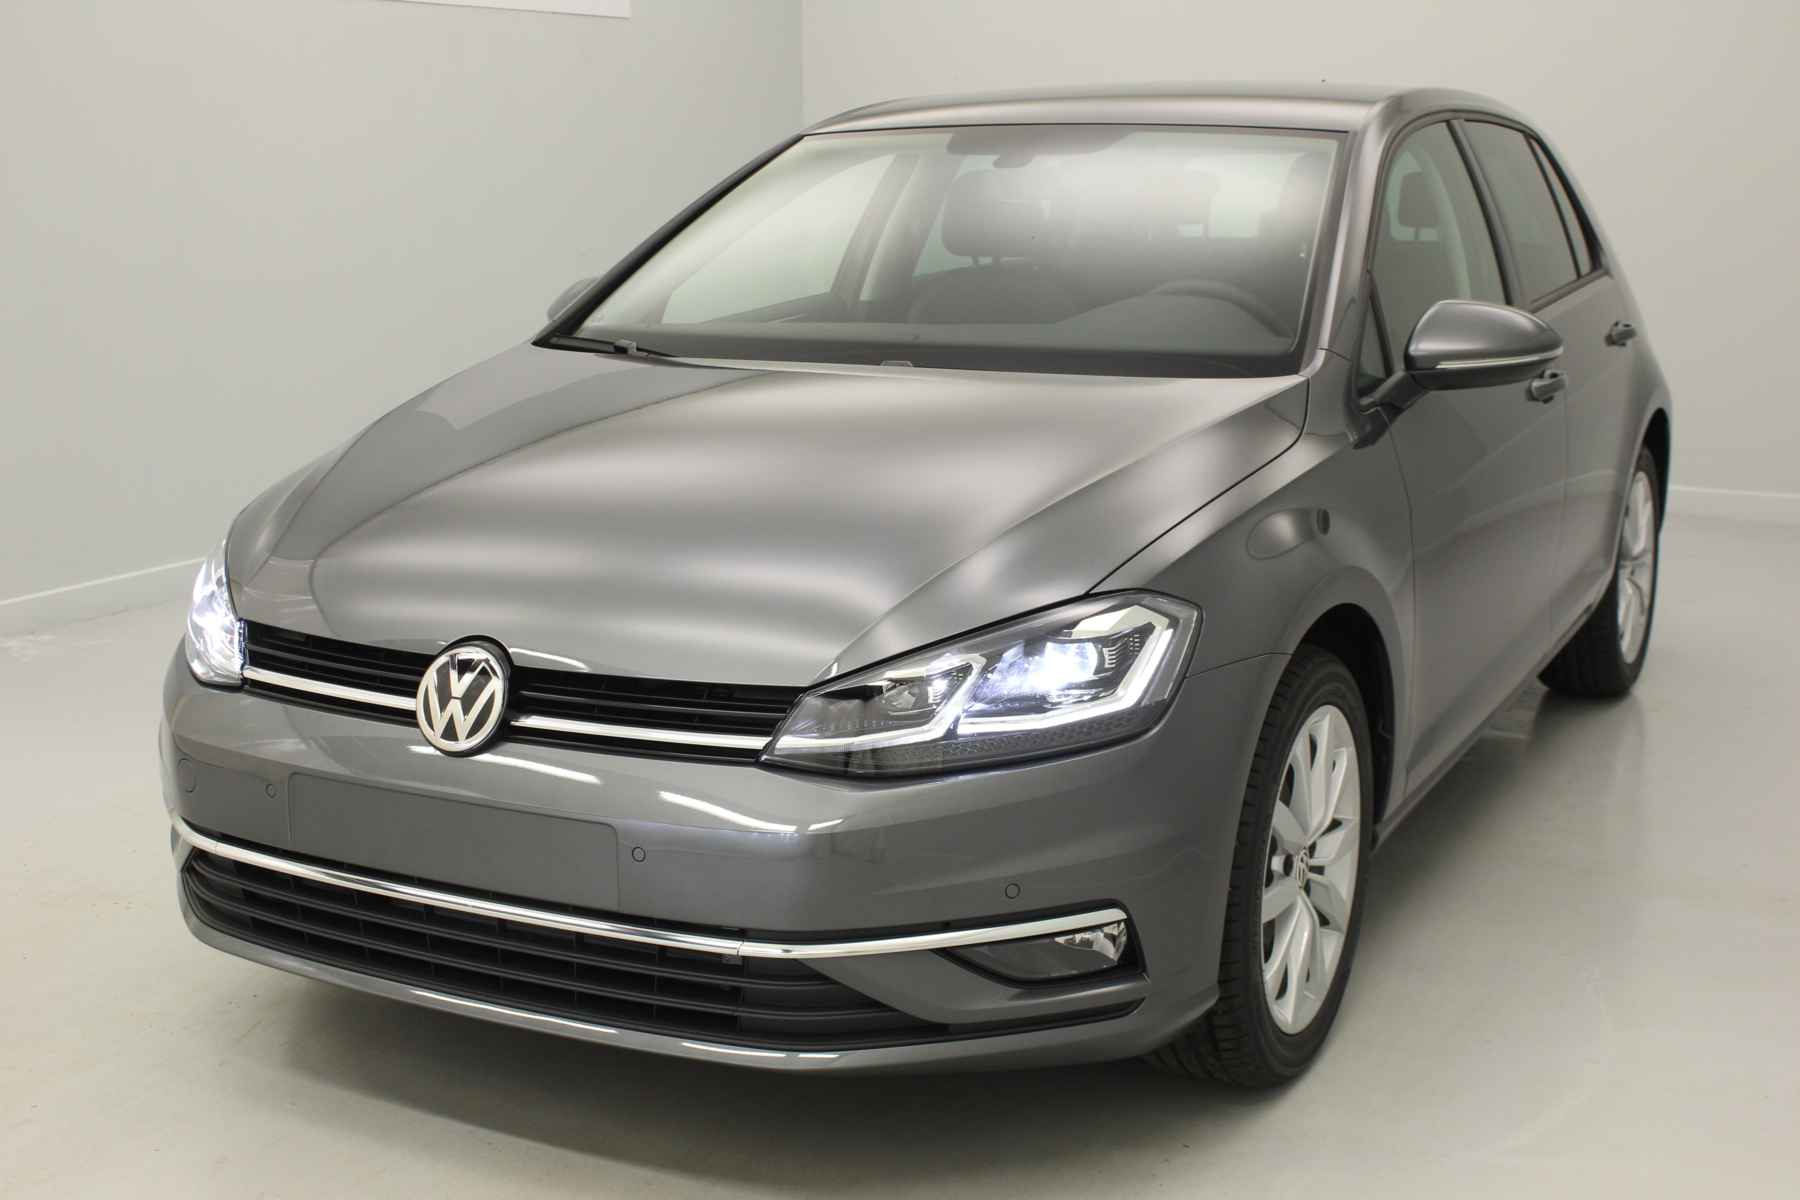 VOLKSWAGEN Golf Nouvelle 1.4 TSI 125 BlueMotion Technology Confortline Gris Indium + Pack Hiver + Alarme avec options